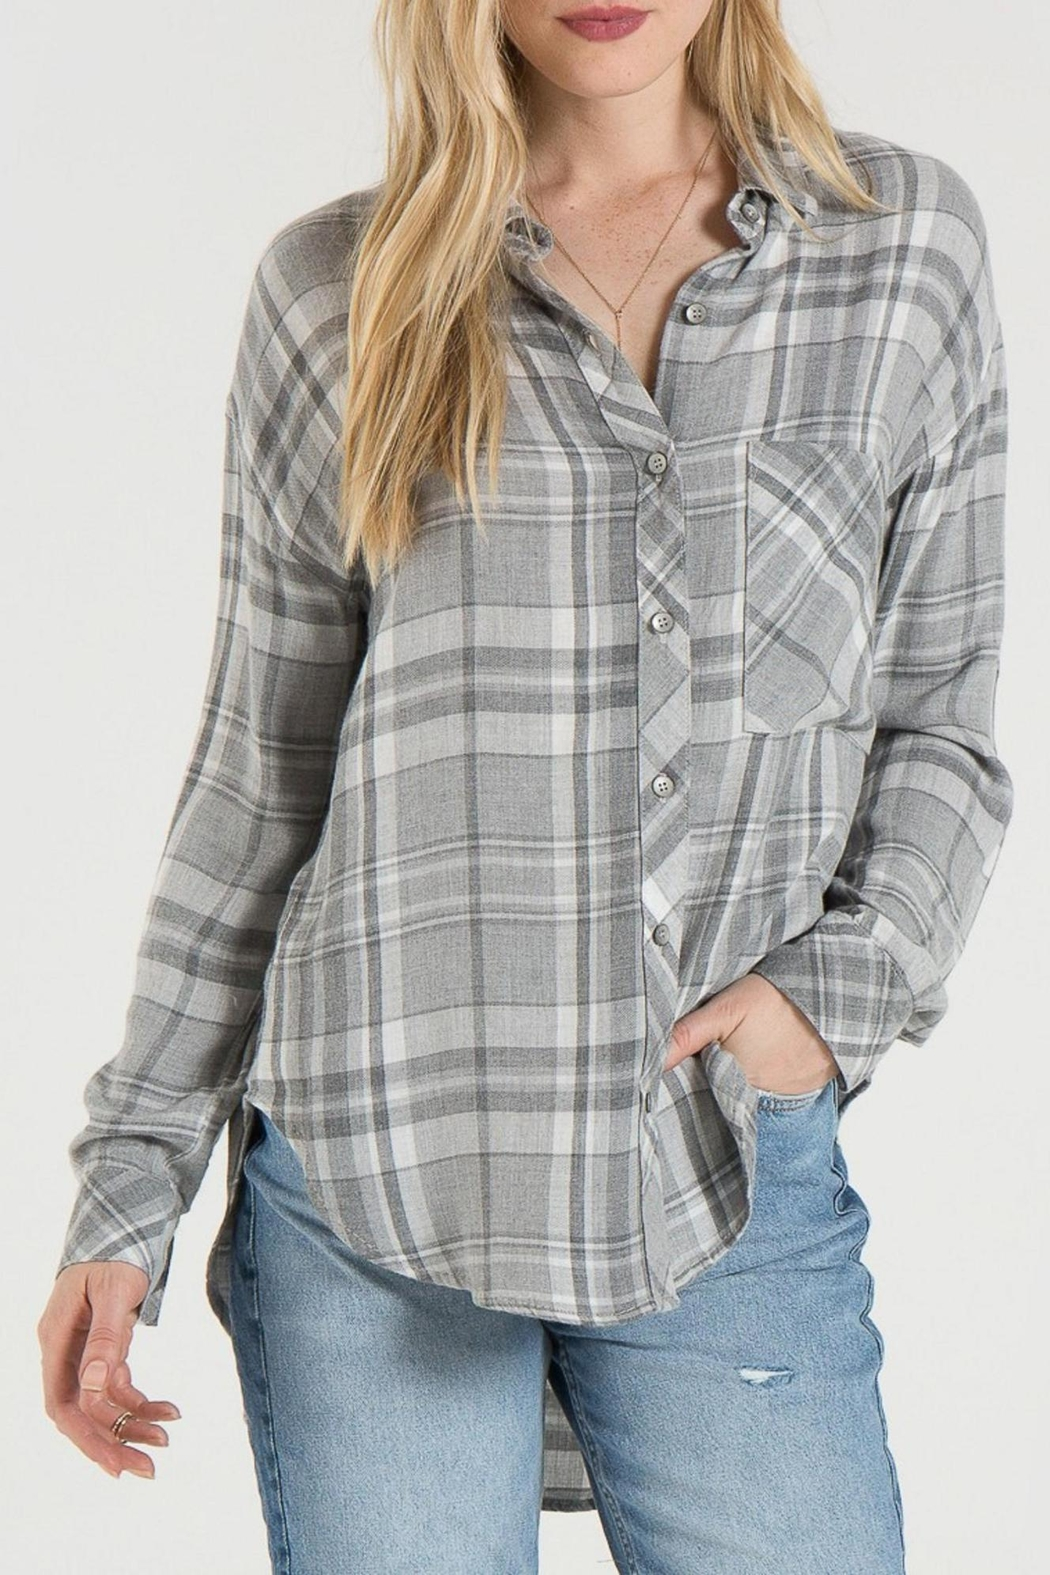 Bella Dahl Grey Plaid Shirt - Back Cropped Image